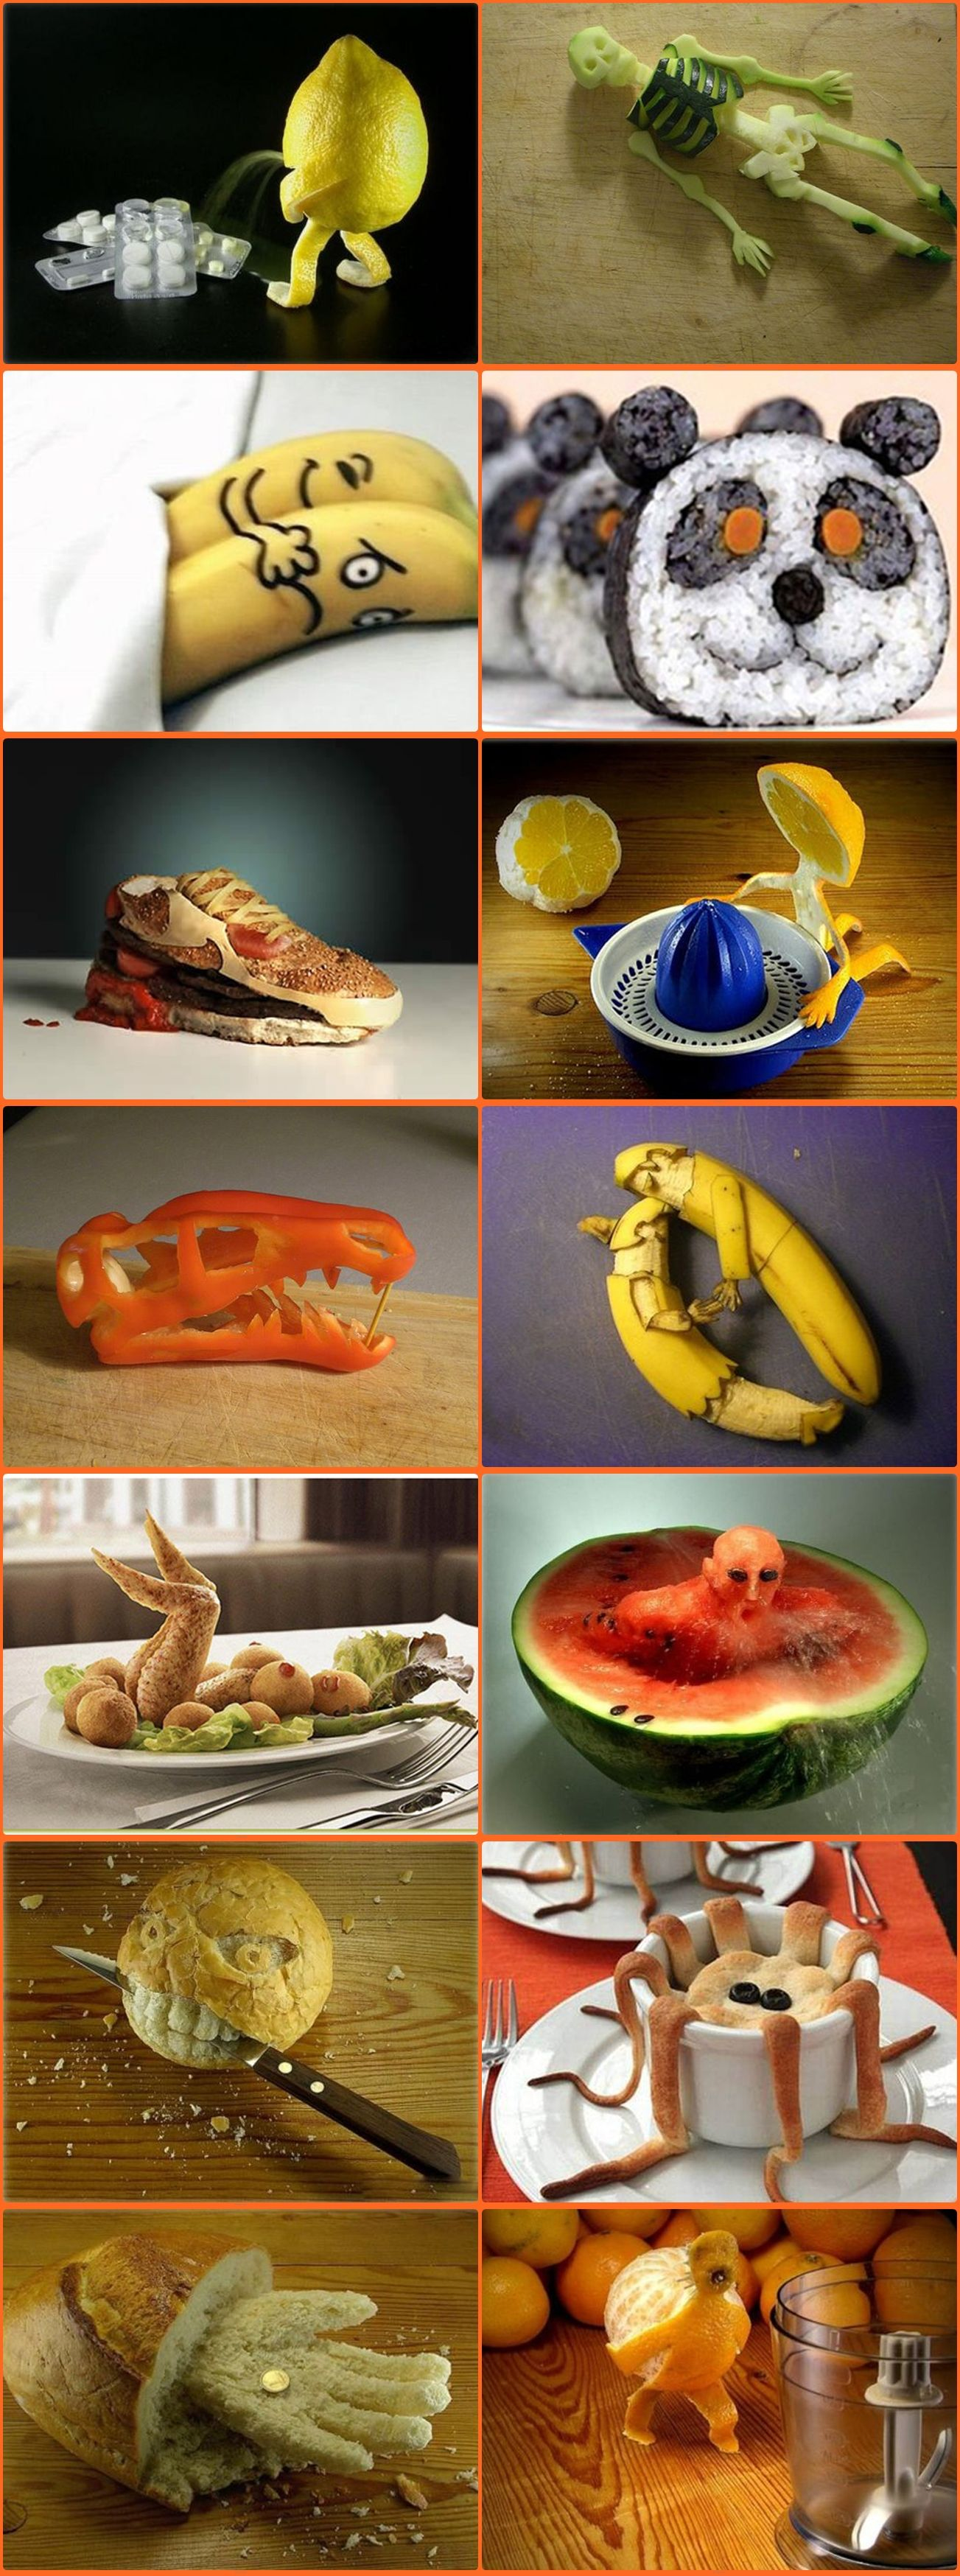 Food art just art pinterest deko essen und for Essen deko